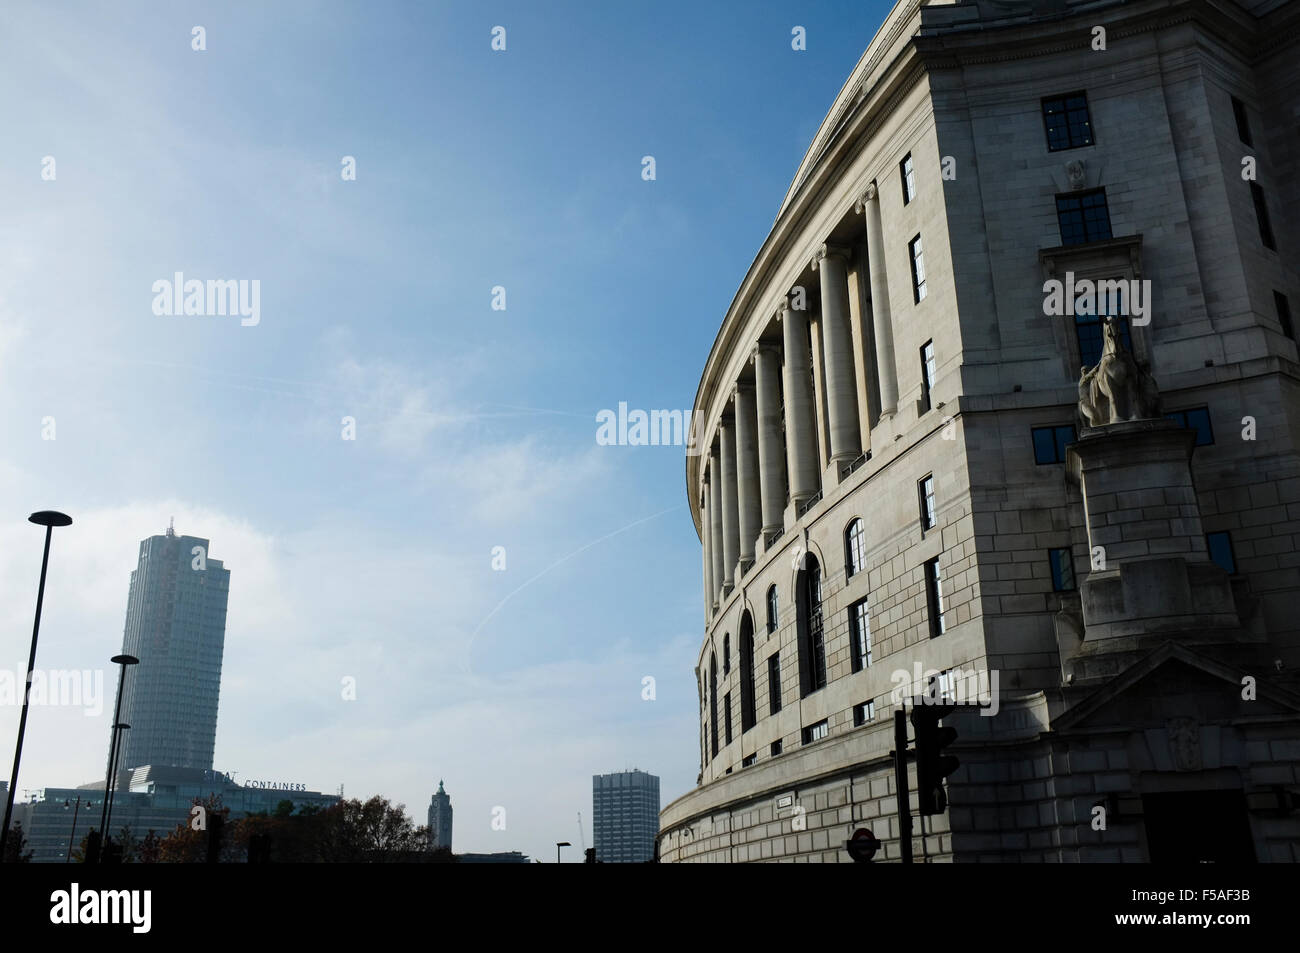 The Unilever Building - Stock Image